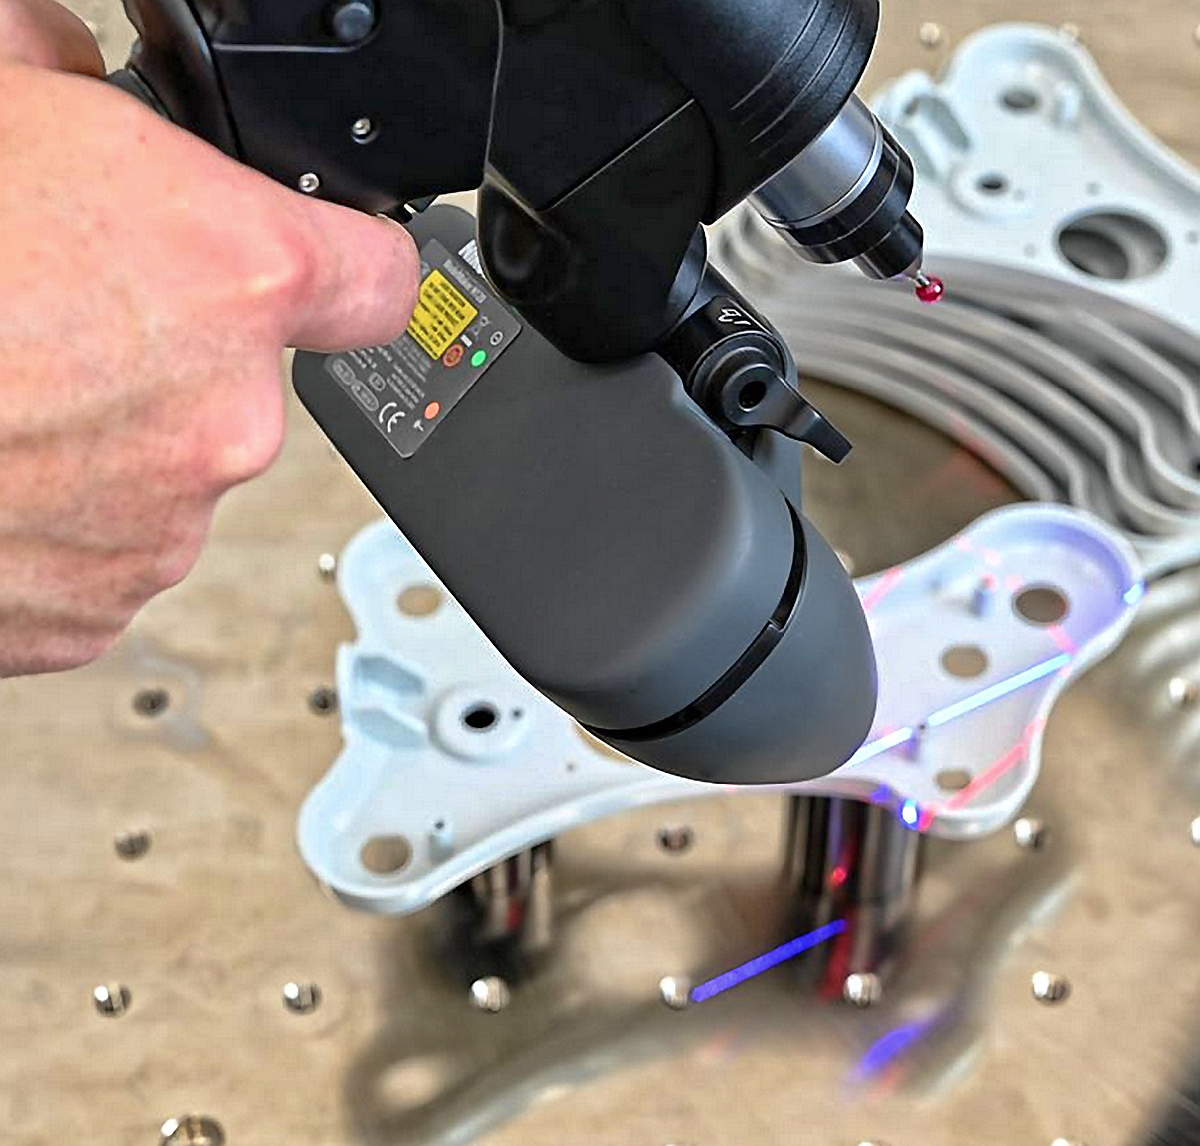 Close-up showing tactile probing and laser scanning with a FREEDOM ULTIMATE SCAN arm. Photo via LK Metrology.